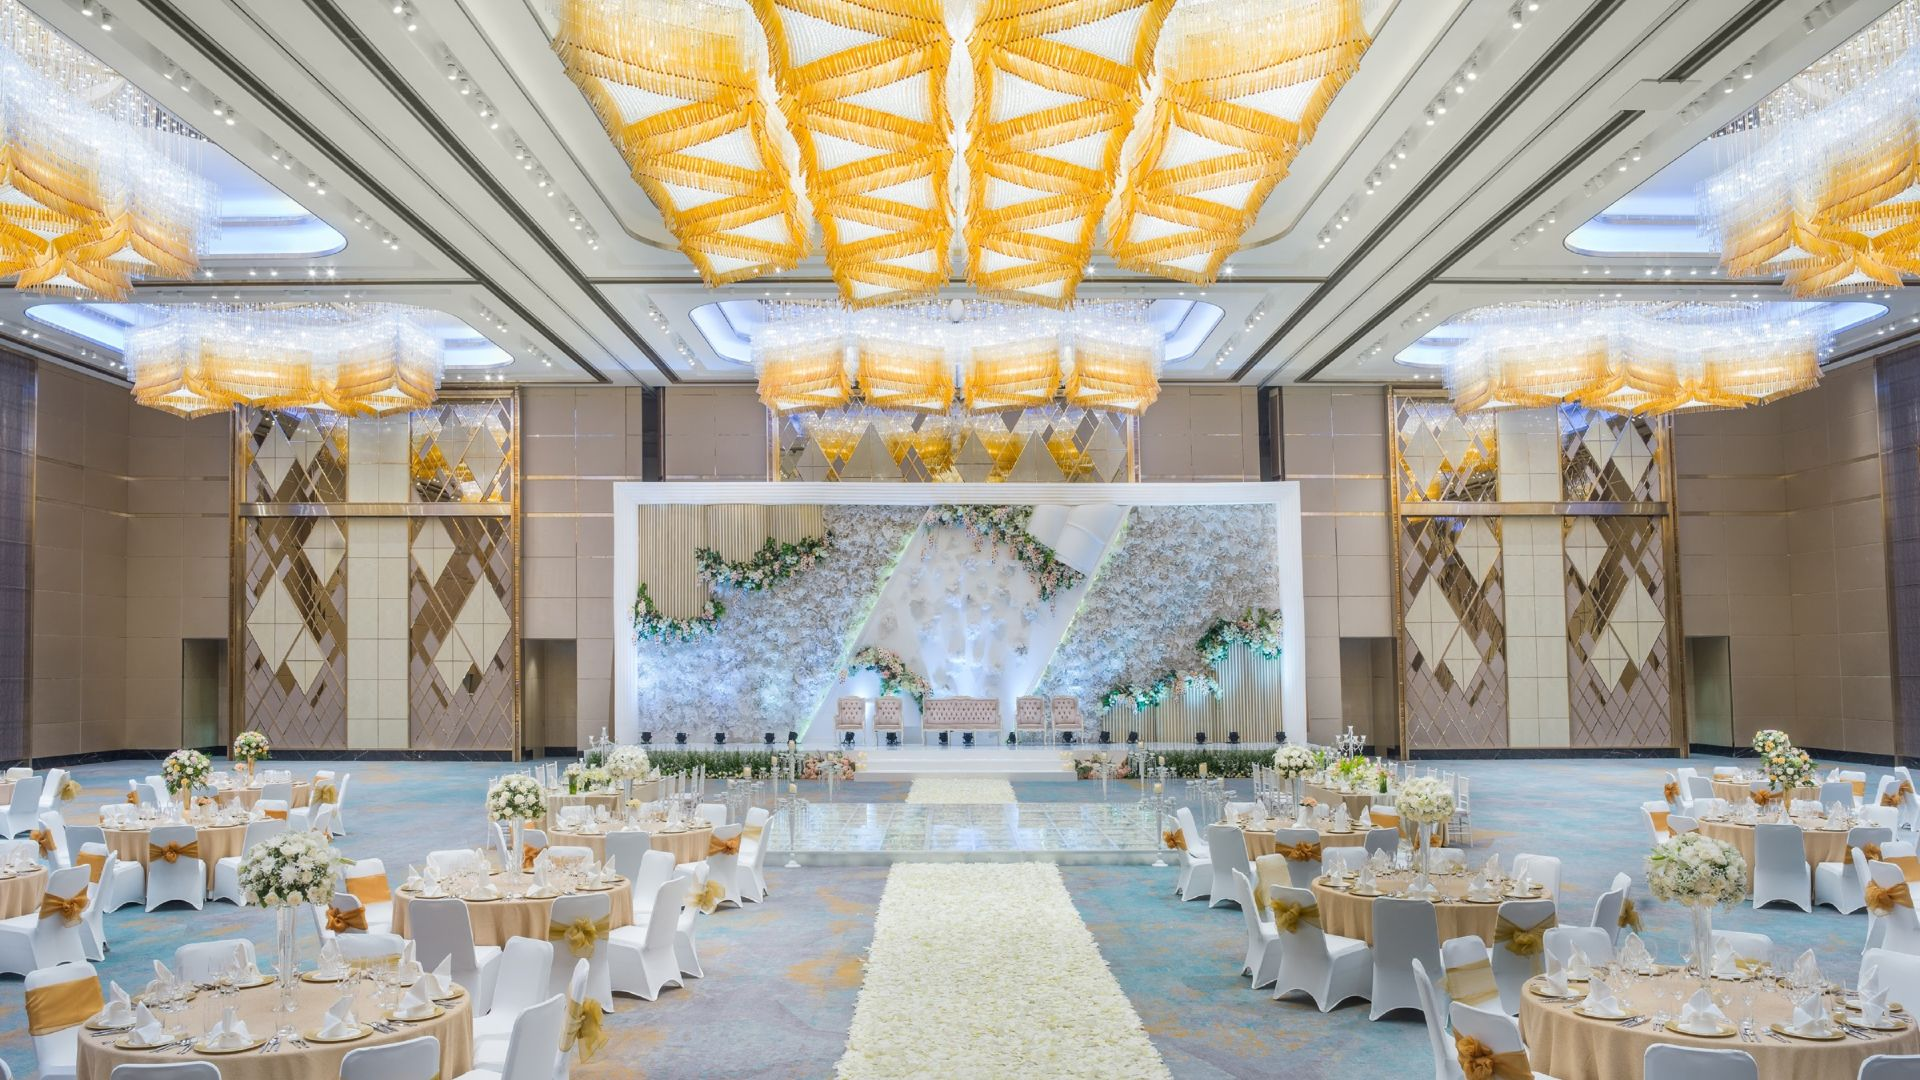 | An awe-inspiring Wedding Venue in Jakarta